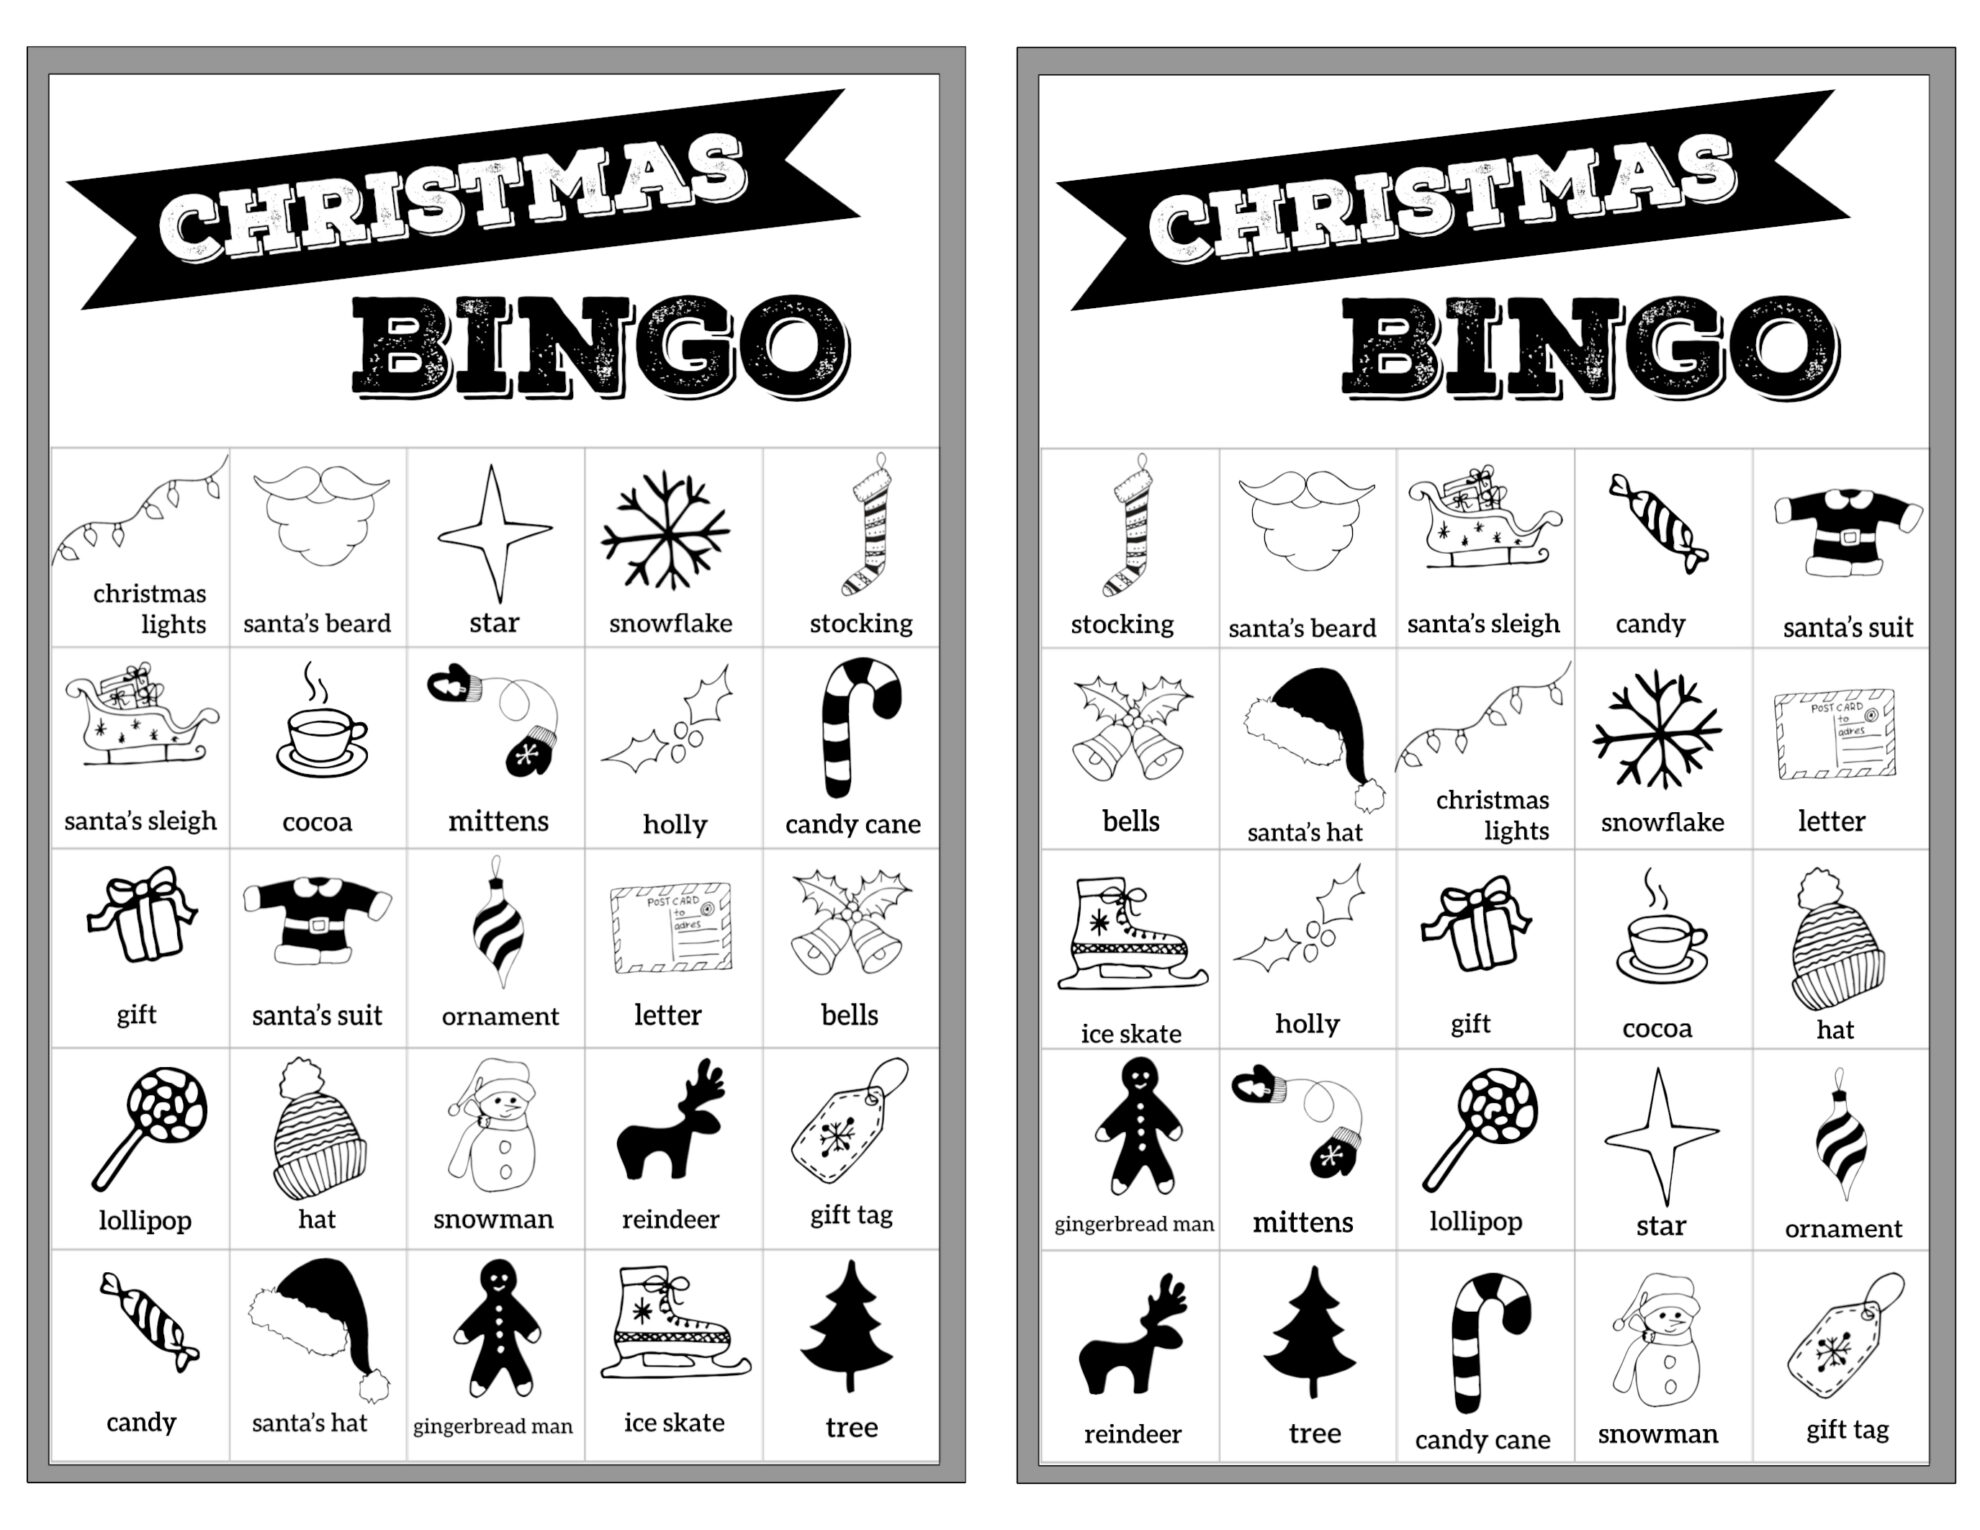 graphic regarding Christmas Bingo Card Printable known as Cost-free Xmas Bingo Printable Playing cards - Paper Path Layout